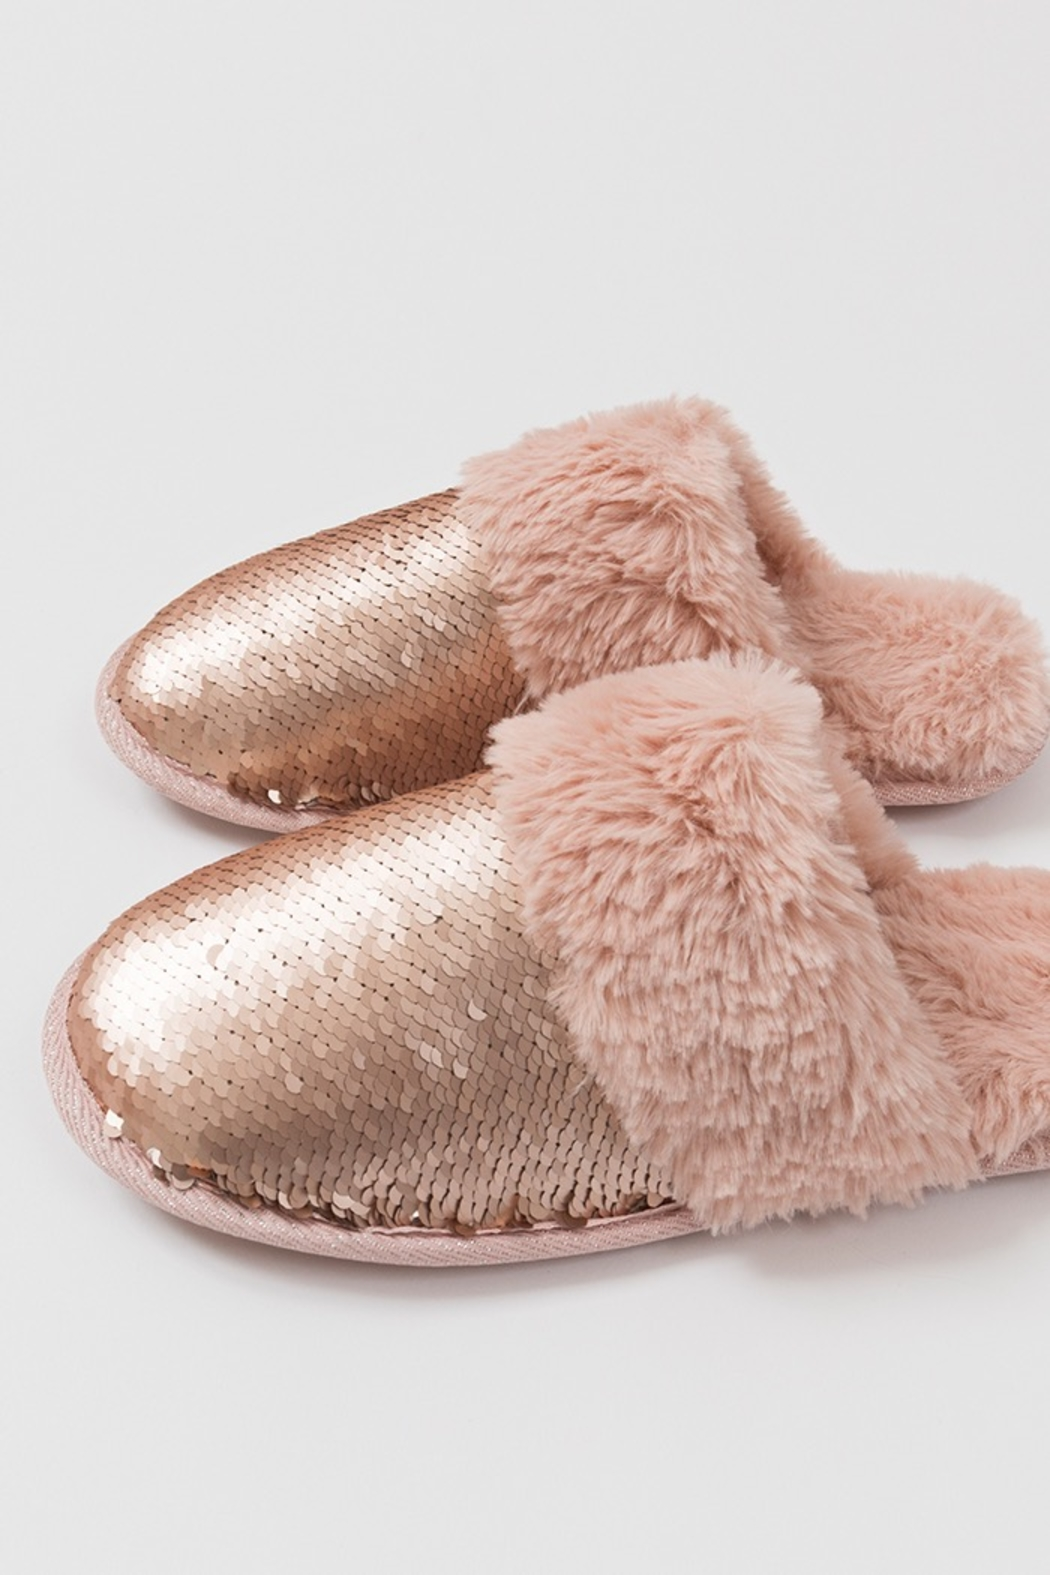 Pia Rossini Kasha Slippers - Front Full Image